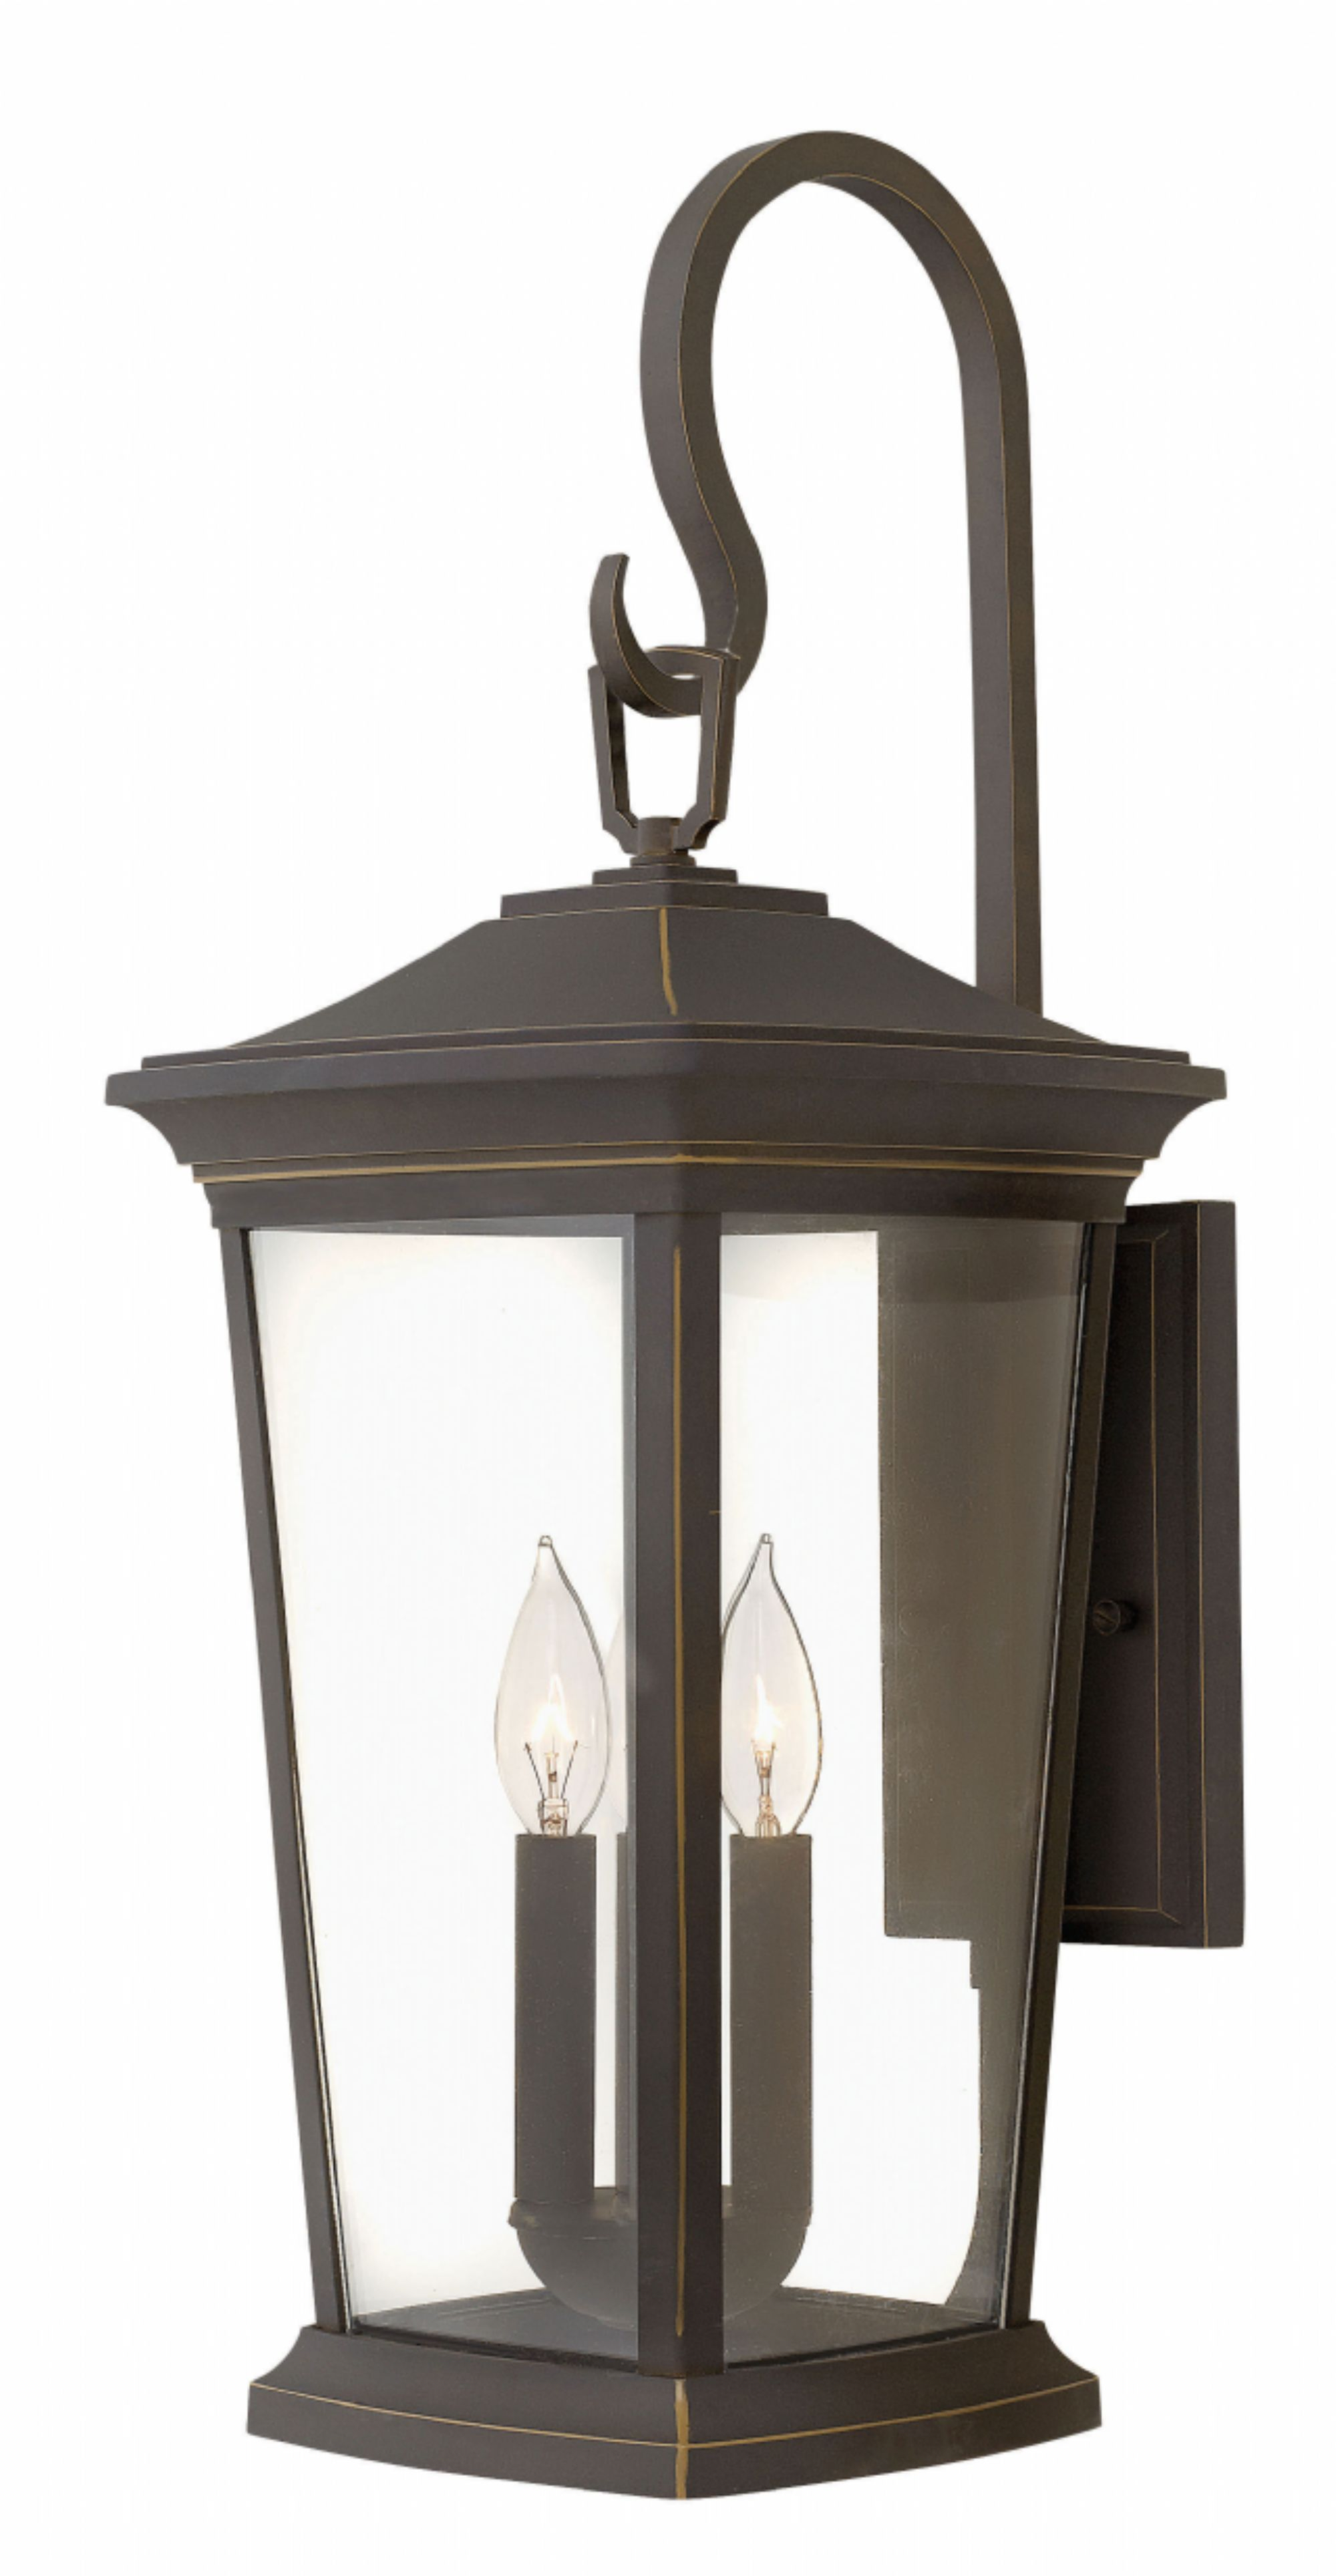 Hinkley lighting bromley 2366oz h lighting pinterest bromley hinkley lighting carries many oil rubbed bronze bromley exterior wall mount light fixtures that can be used to enhance the appearance and lighting of any mozeypictures Gallery